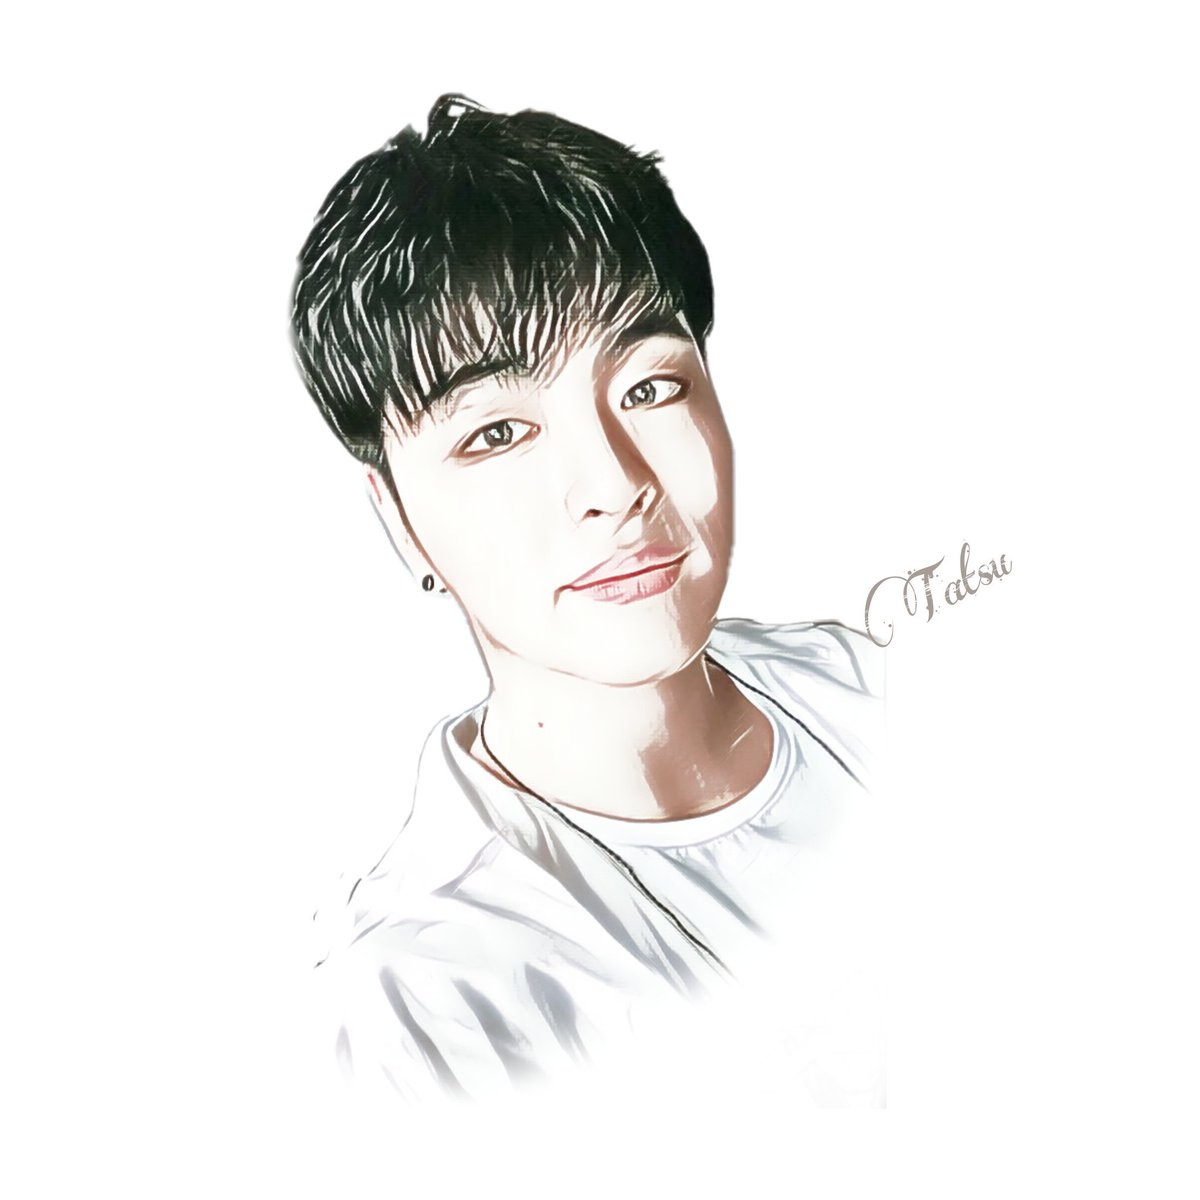 """""""If you give up, the battle ends there."""" Junhoe. Happy Birthday our Diva!   #PoetJunhoeDay #준회야_널_방울방울해 #June #준회 #iKON #fanartiKON #fanart<br>http://pic.twitter.com/8tHv3ysFBN"""